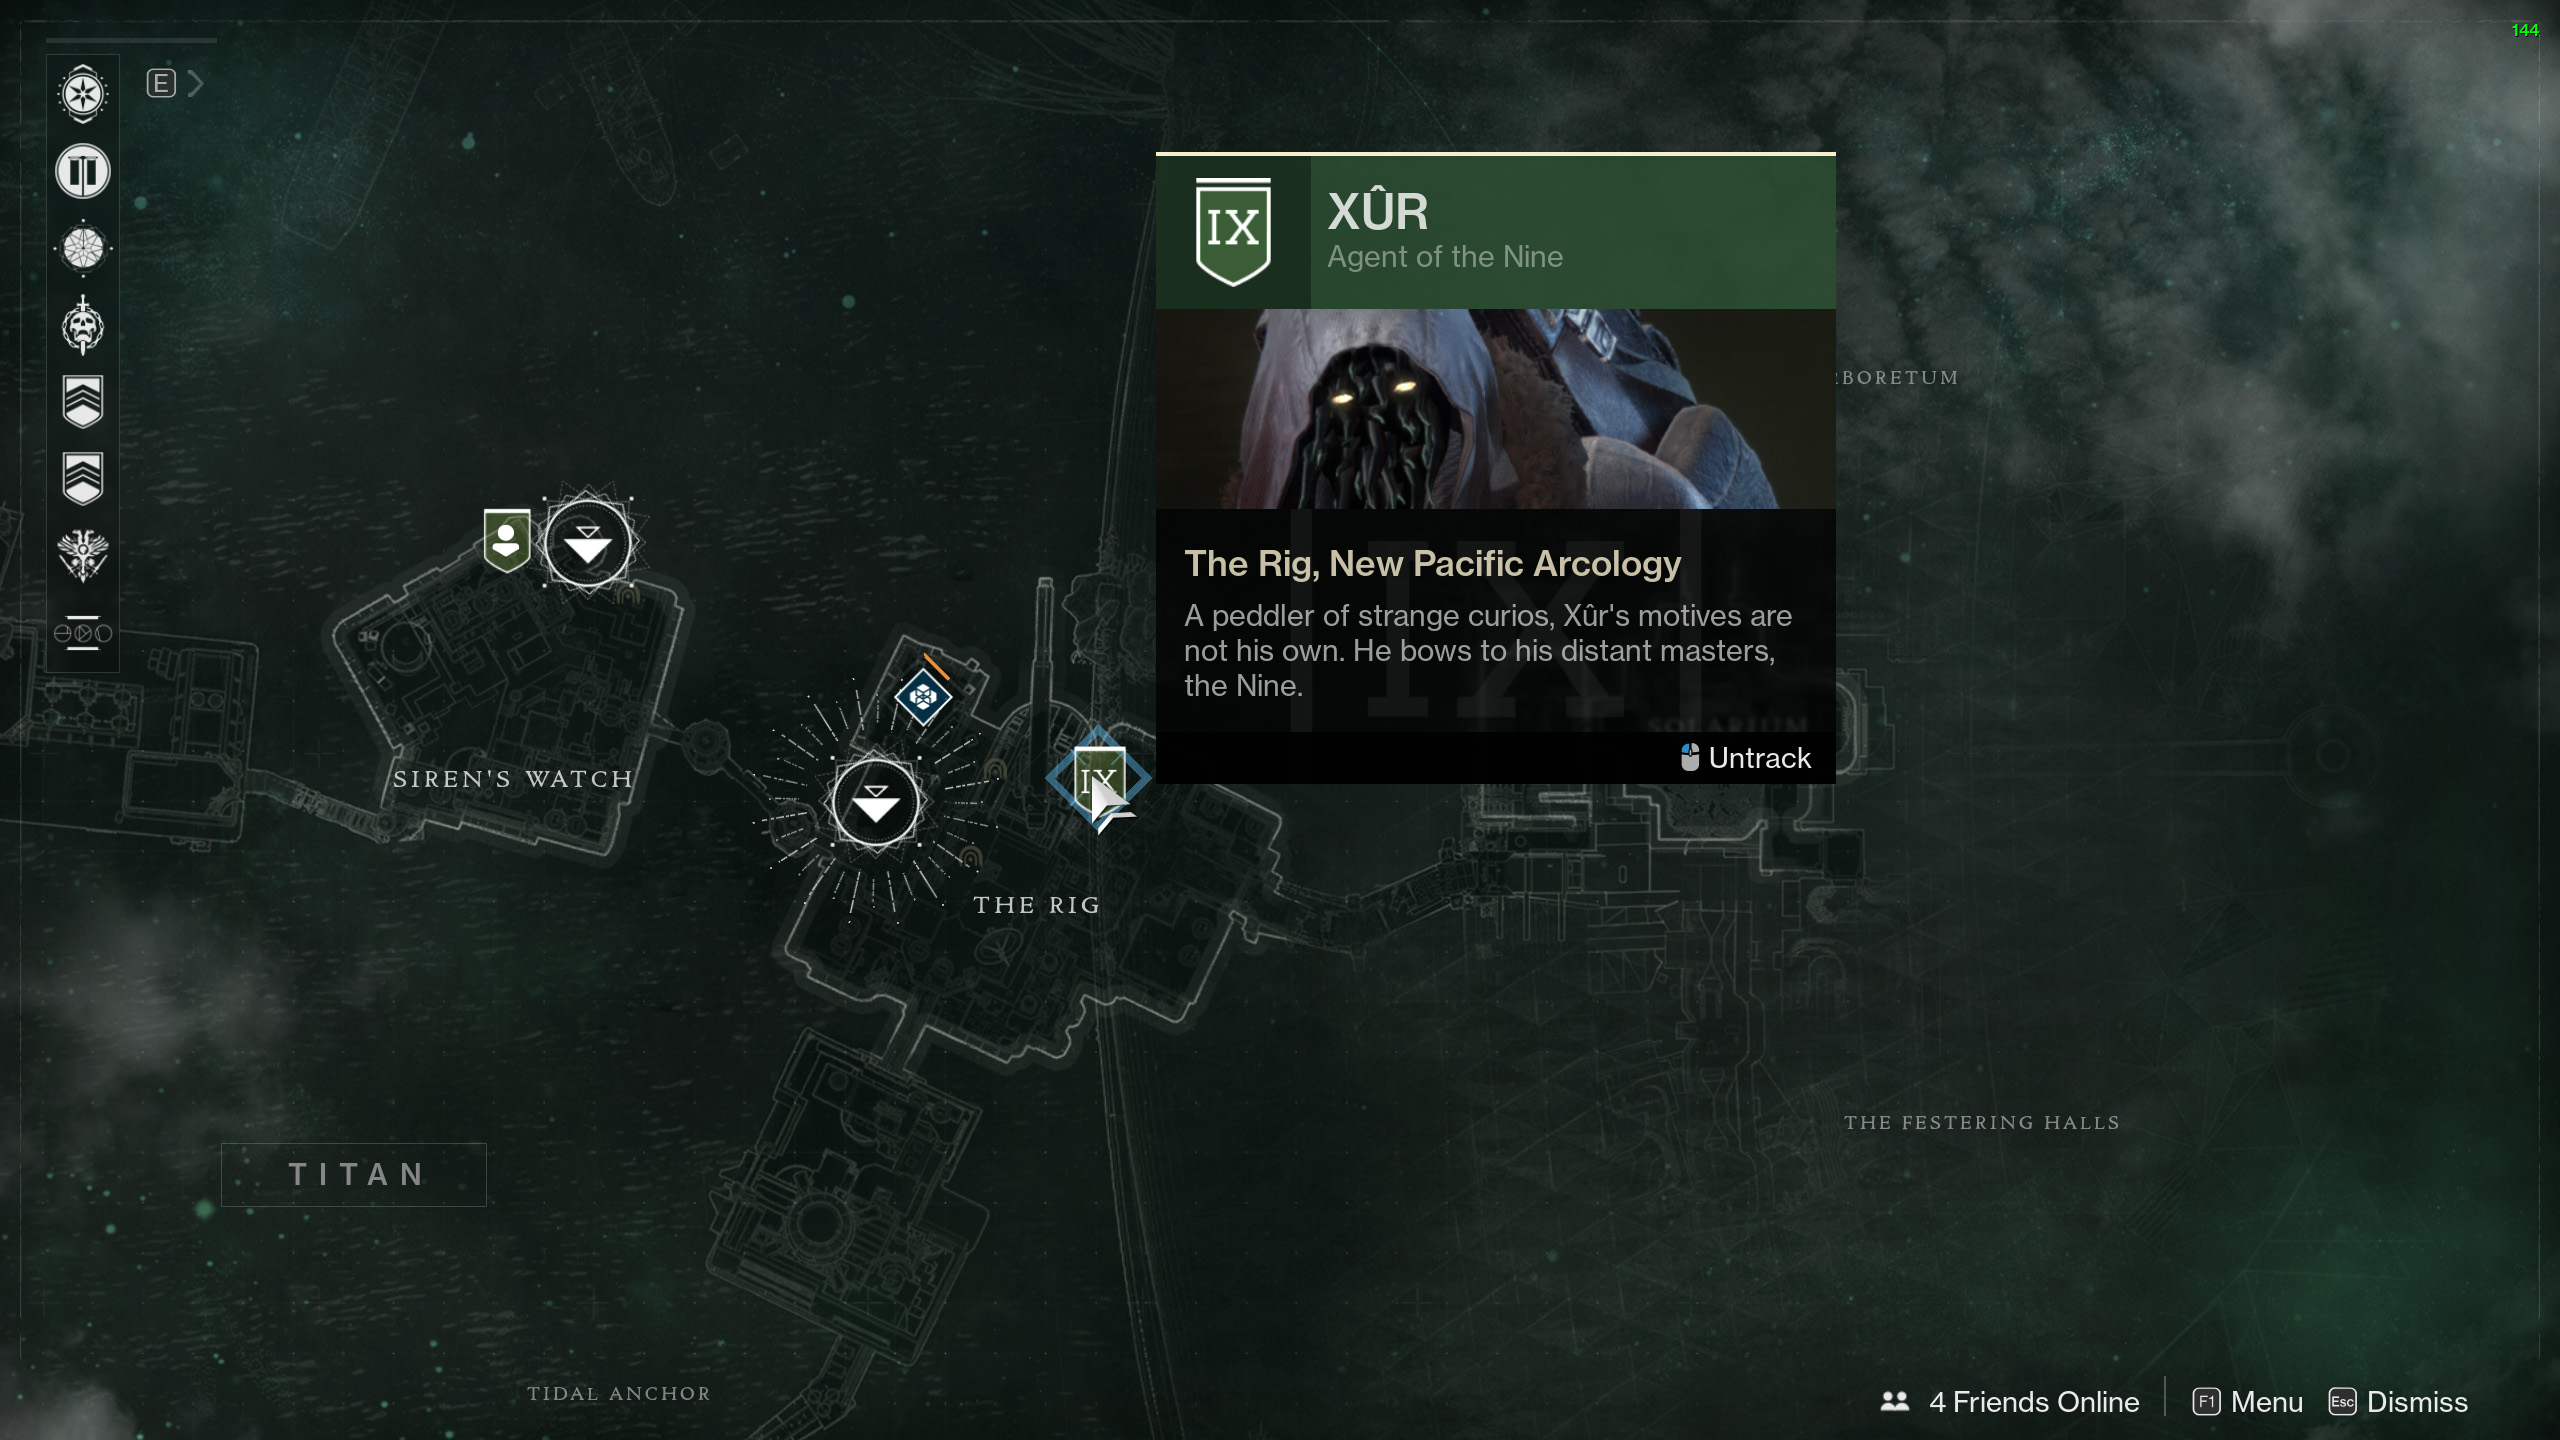 Destiny 2 - Where Is Xur for January 26, 2018?